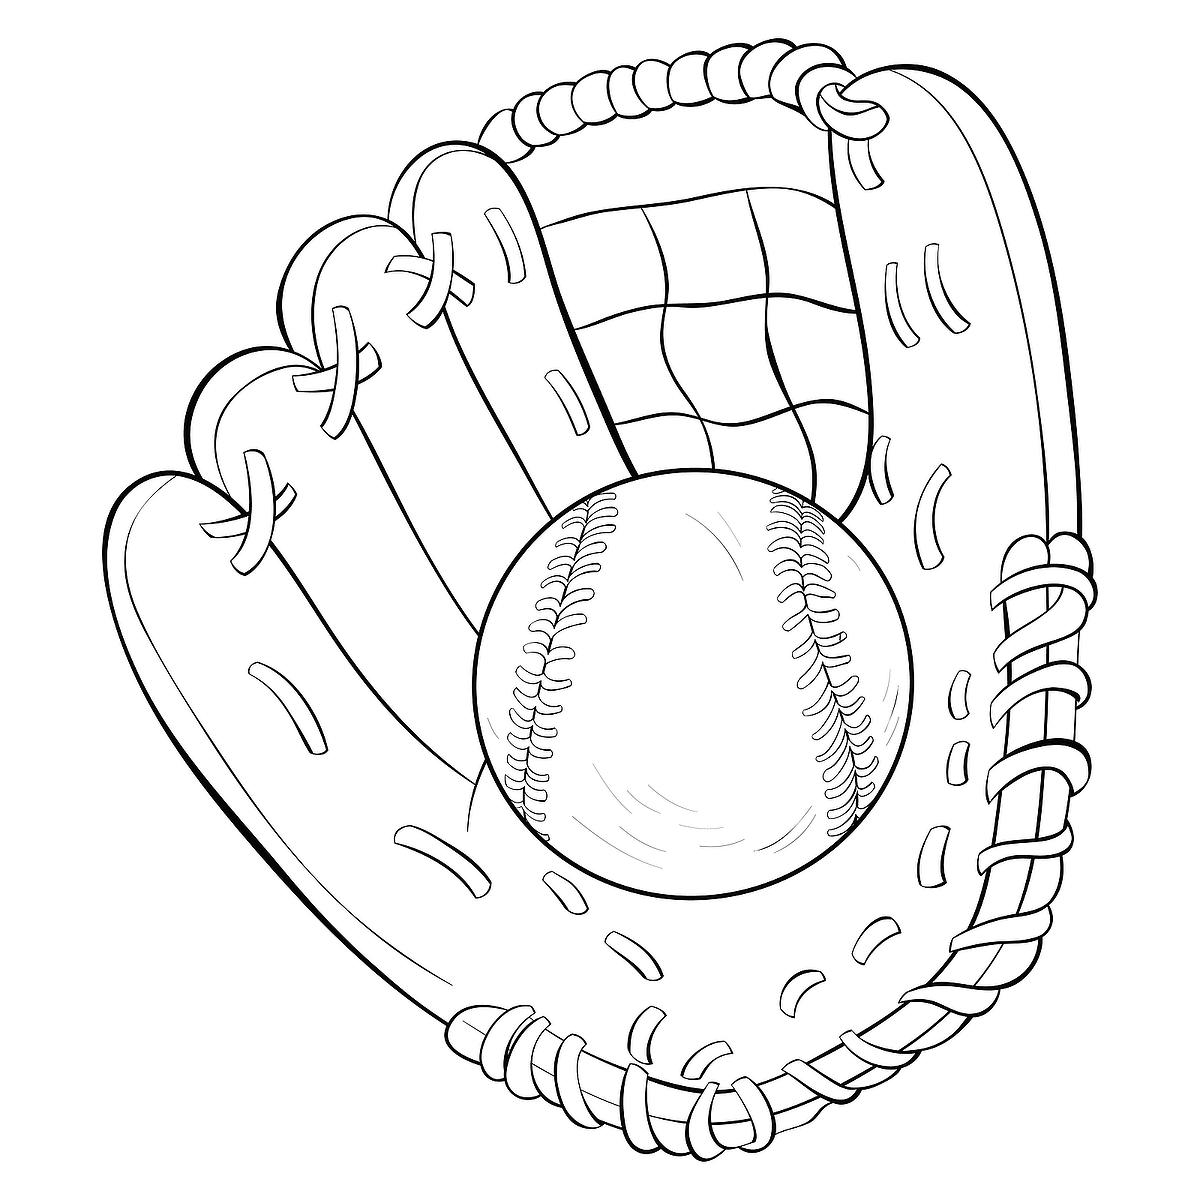 baseball coloring pictures professional baseball player coloring page download baseball pictures coloring